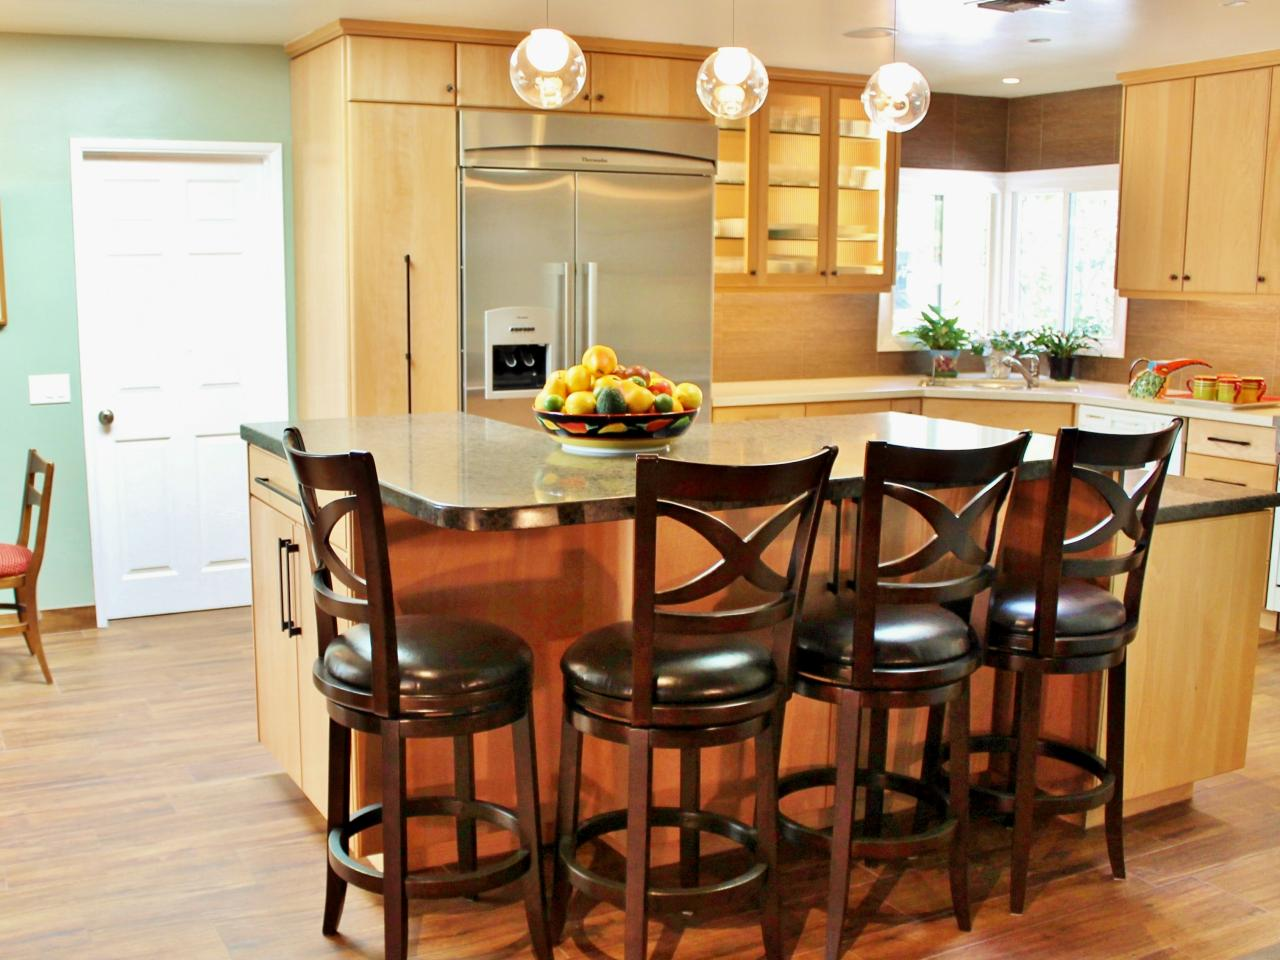 kitchen island with bar seating kitchen island accessories pictures amp ideas from hgtv hgtv 8234